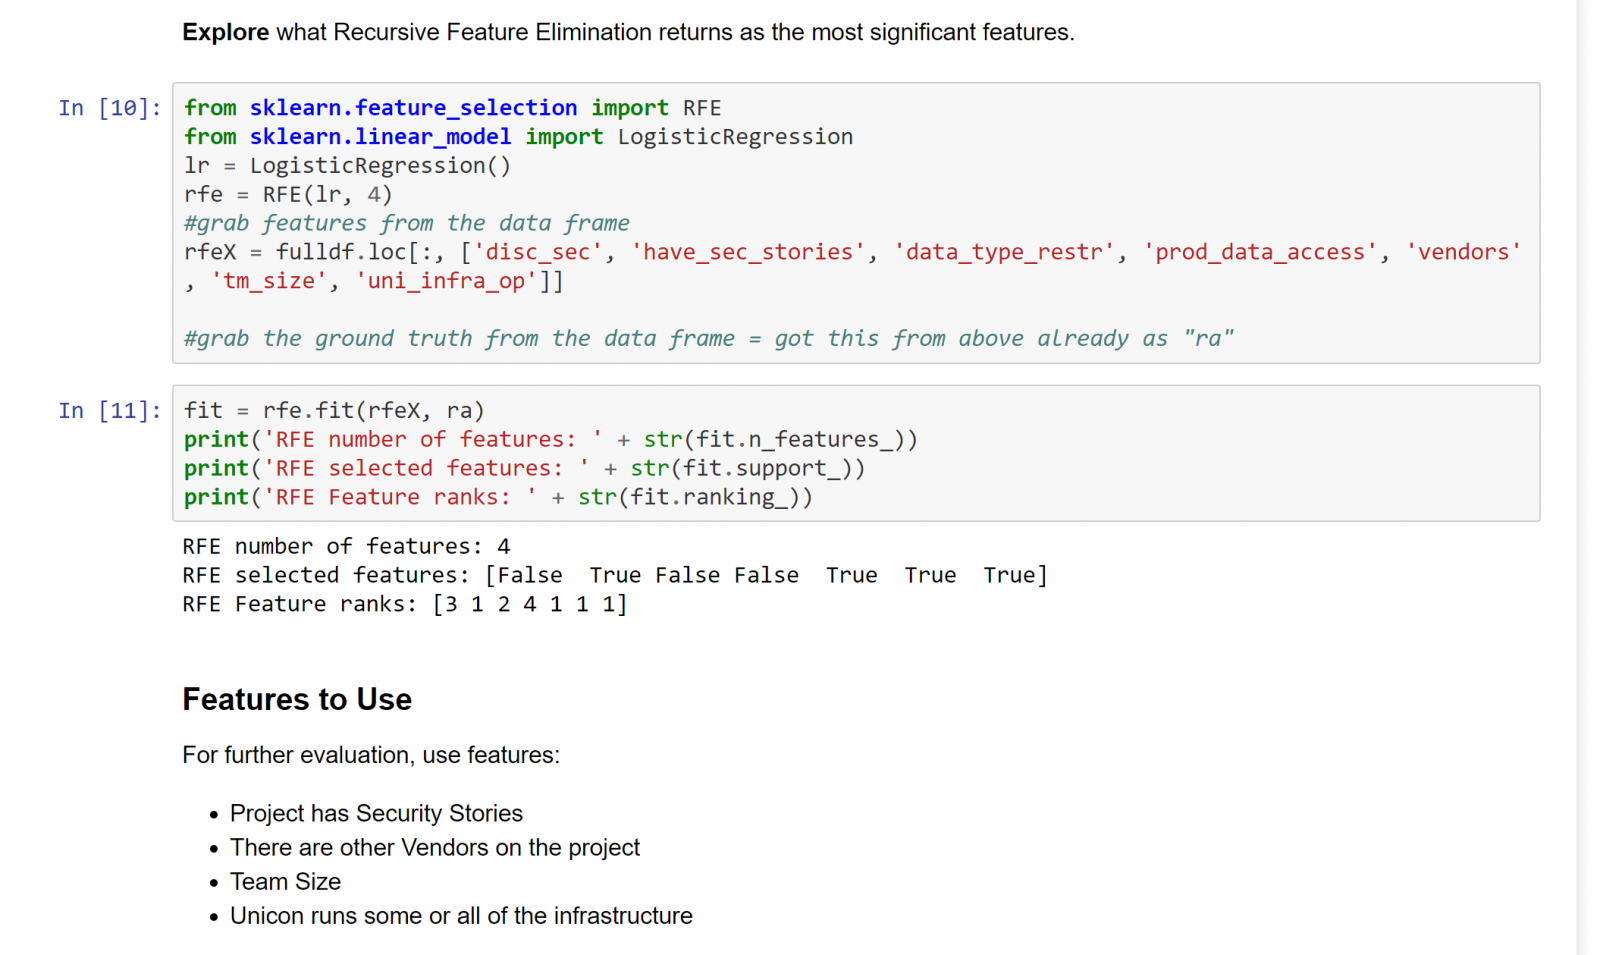 Screenshot from Jupyter Notebook showing recursive feature selection